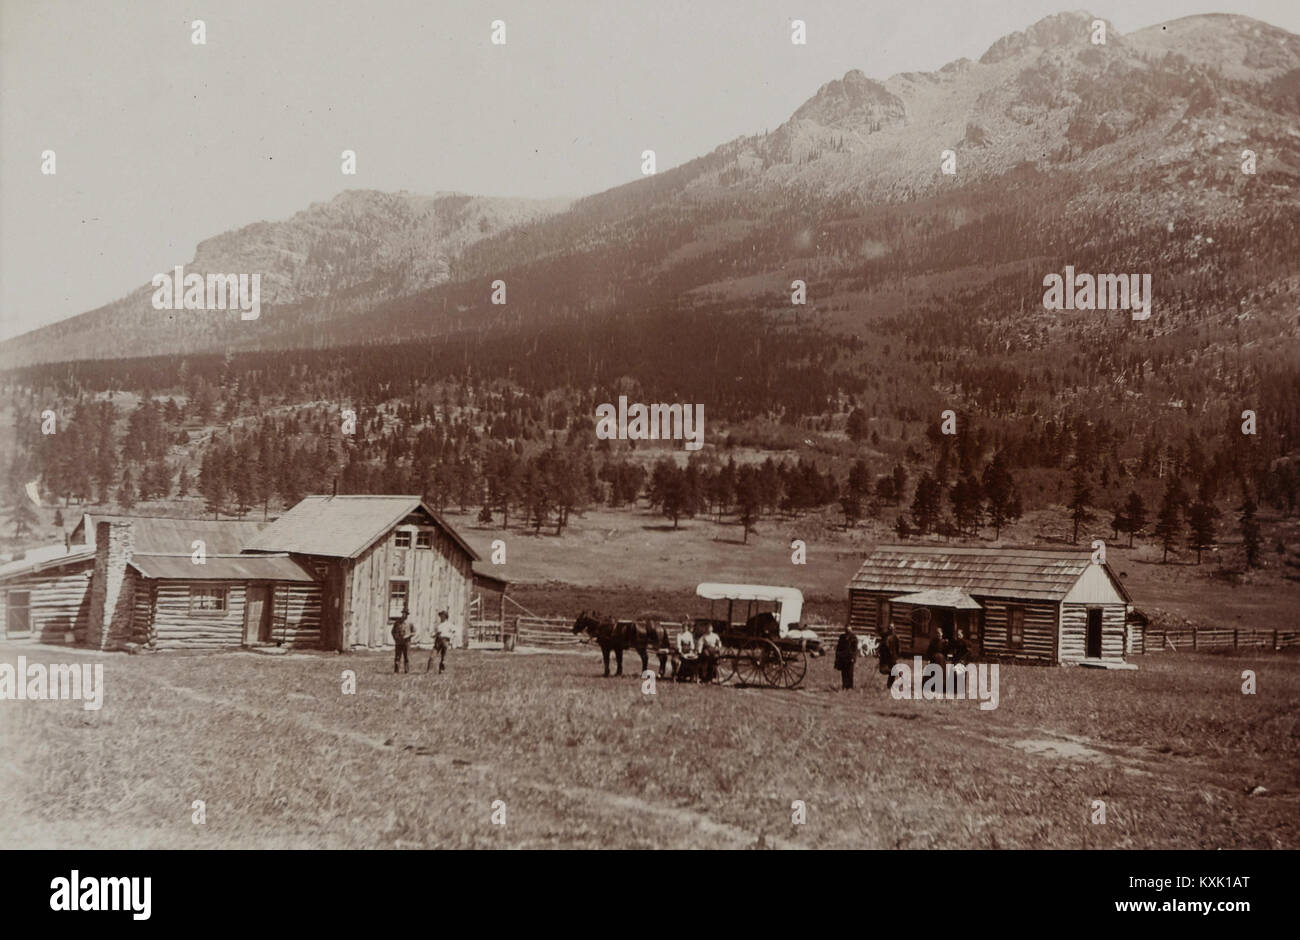 Mud Wagon/ Stagecoach At Log Cabins, Ca. 1880S - Stock Image